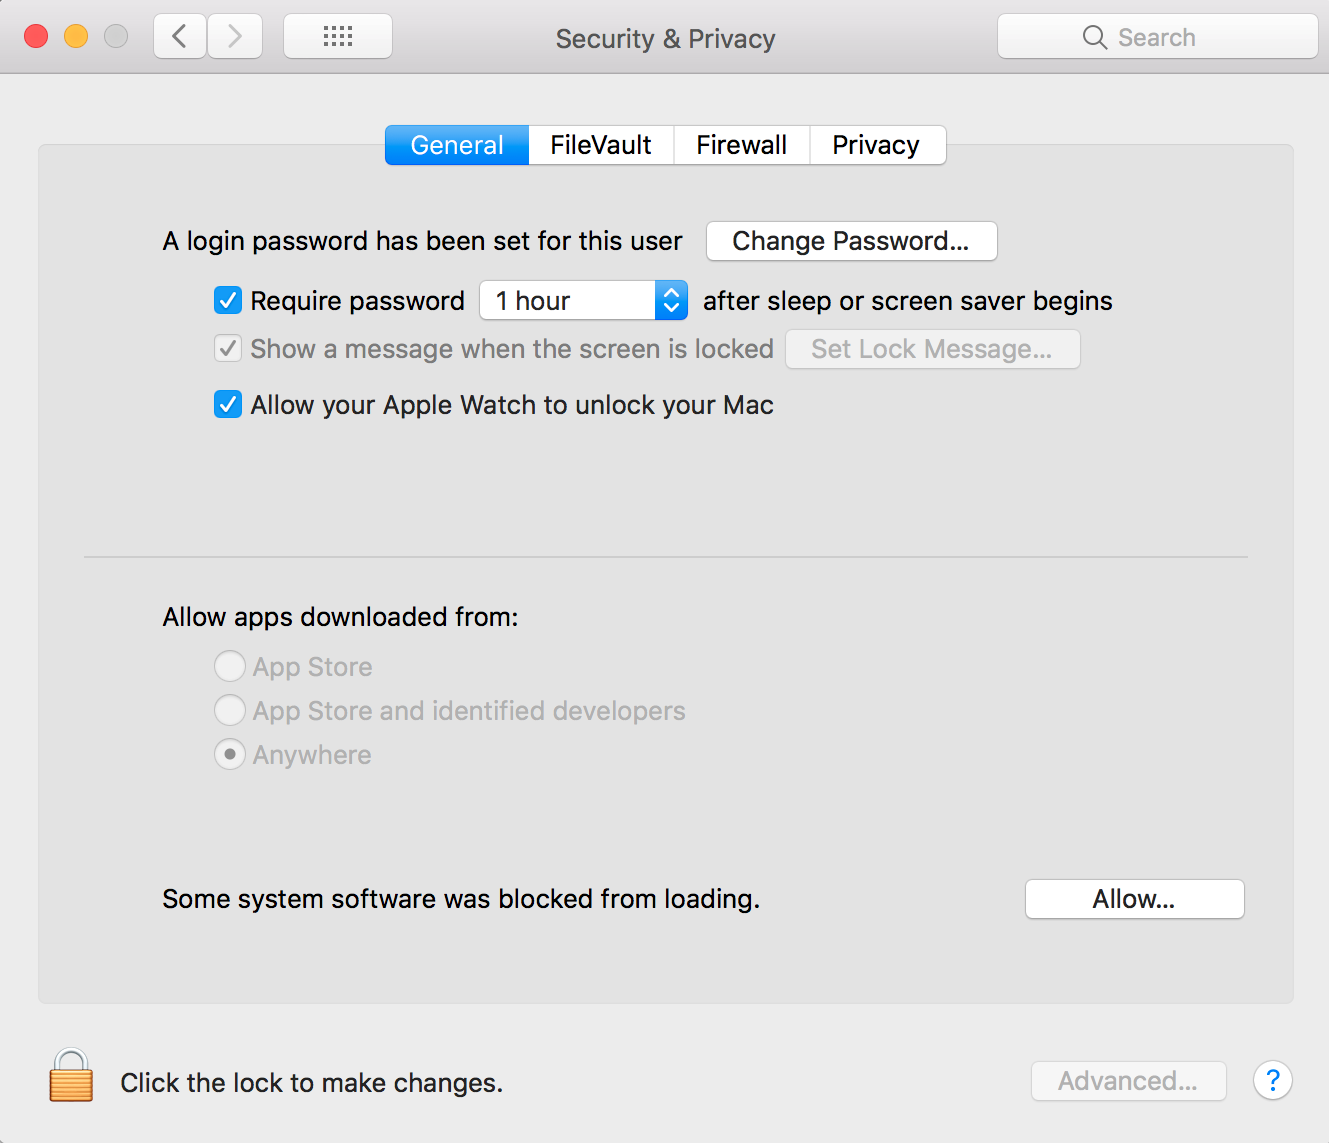 Fix some software was blocked from loading on OS X: High Sierra